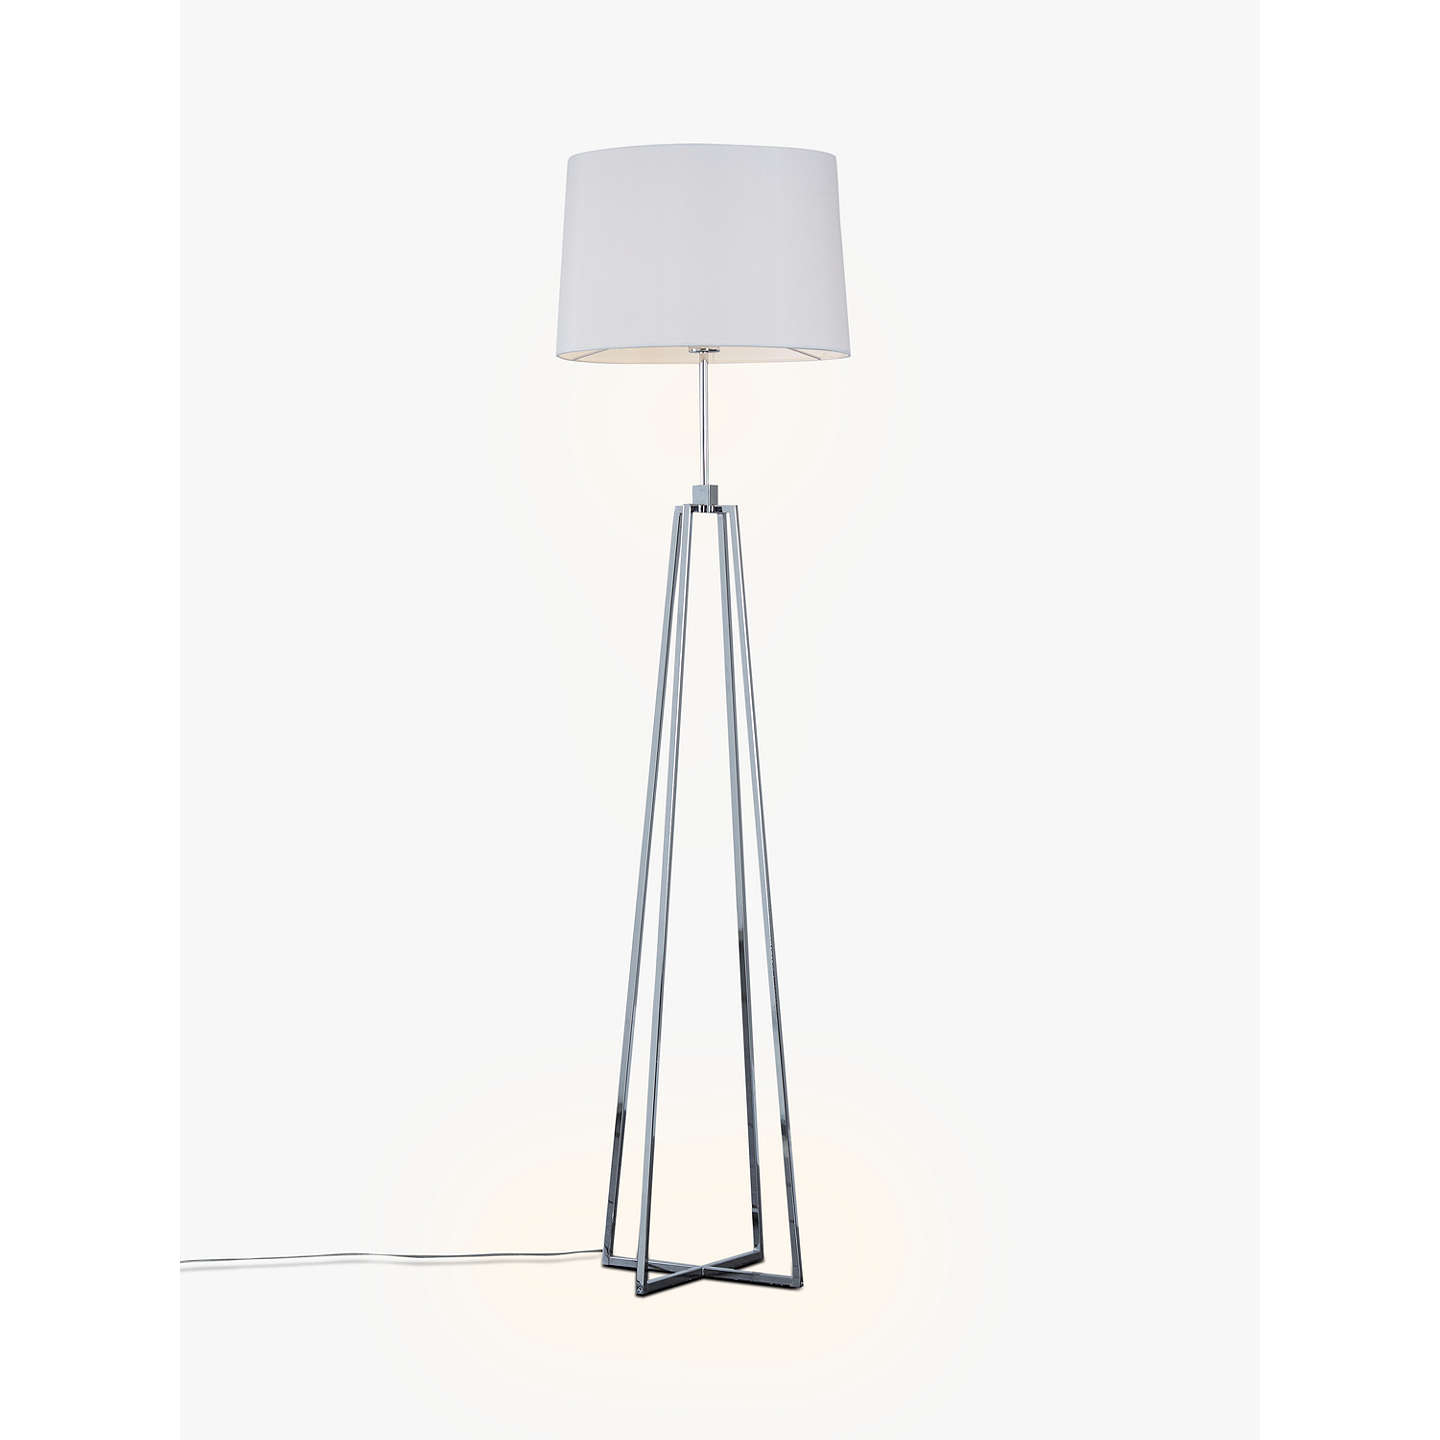 John lewis lockhart floor lamp chrome at john lewis buyjohn lewis lockhart floor lamp chrome online at johnlewis mozeypictures Choice Image